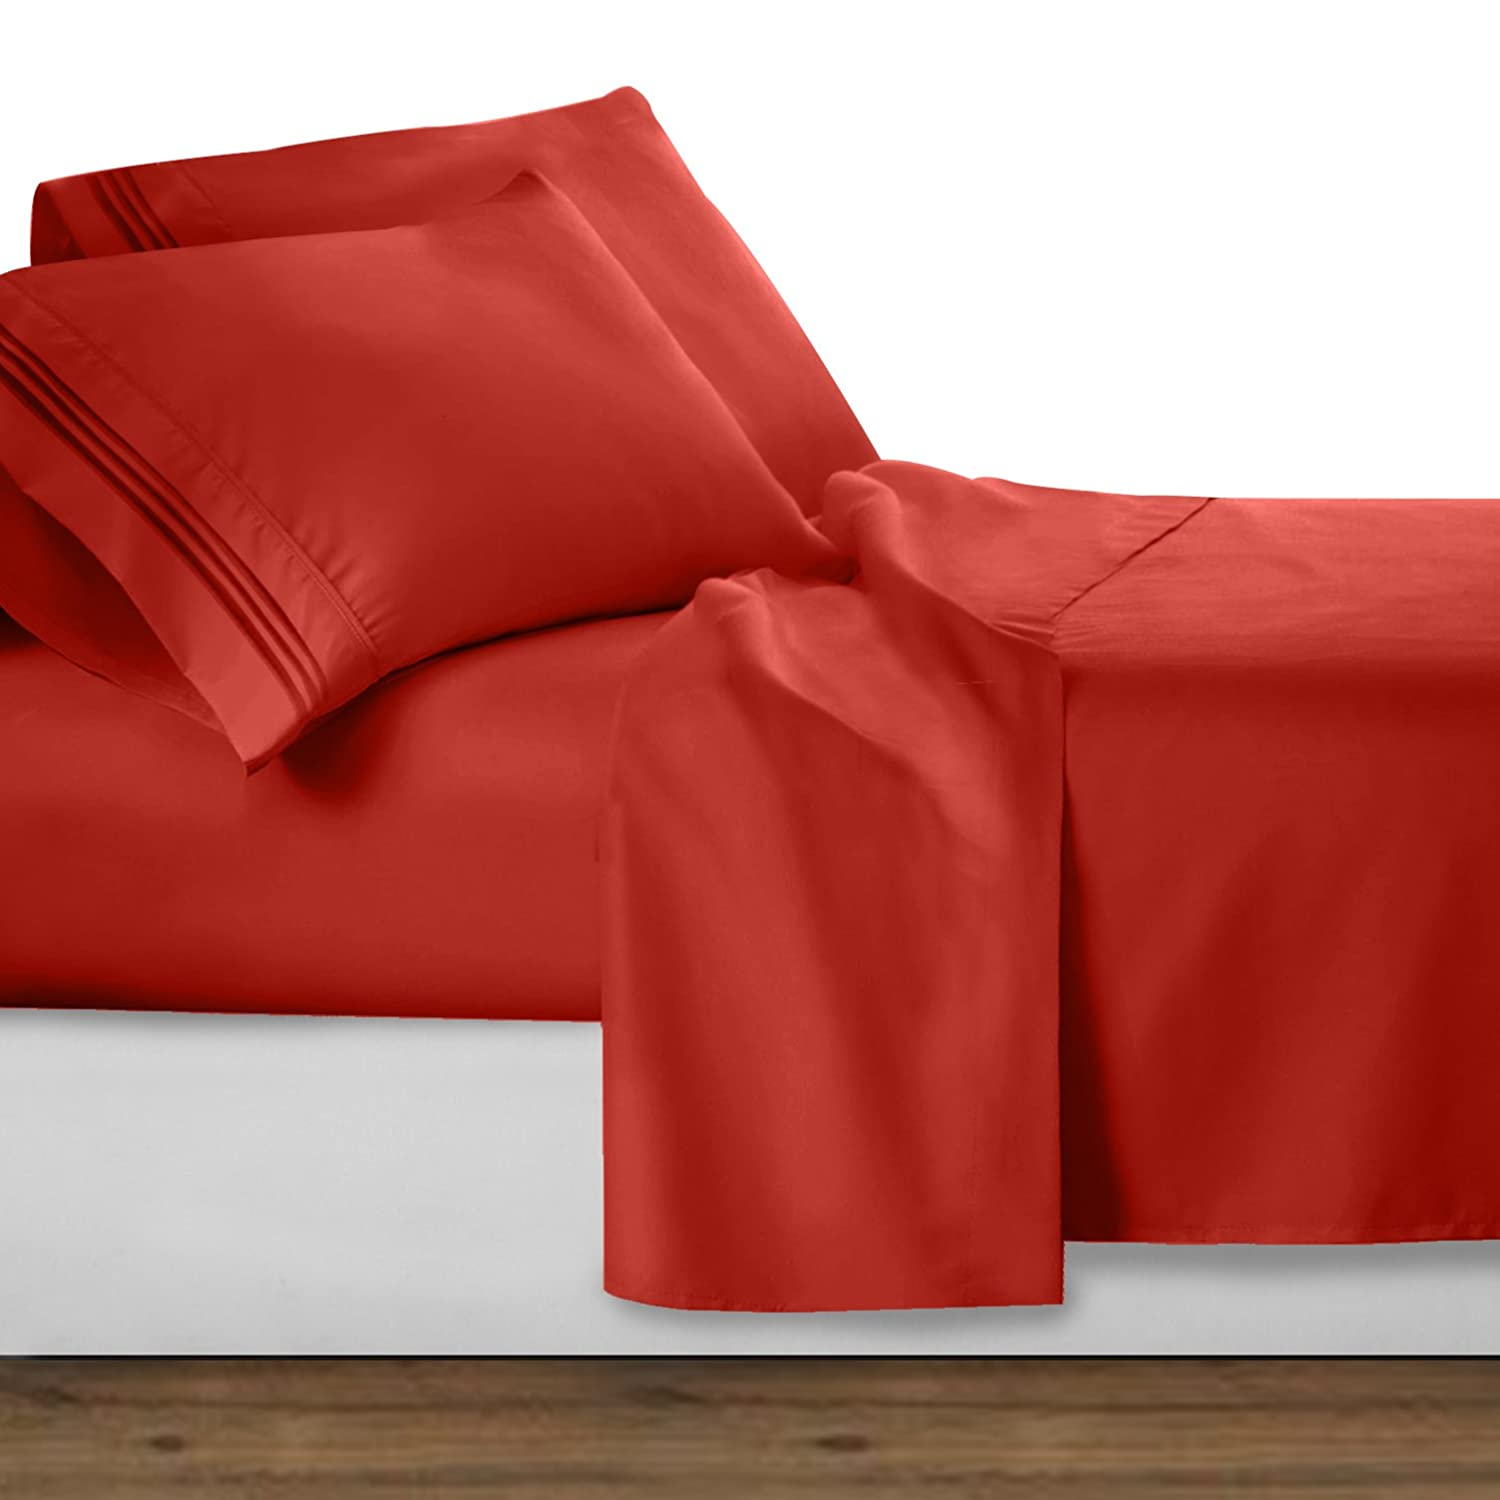 Clara Clark Premier 1800 Collection Deluxe Microfiber 3-Line Bed Sheet Set, King, Orange Rust